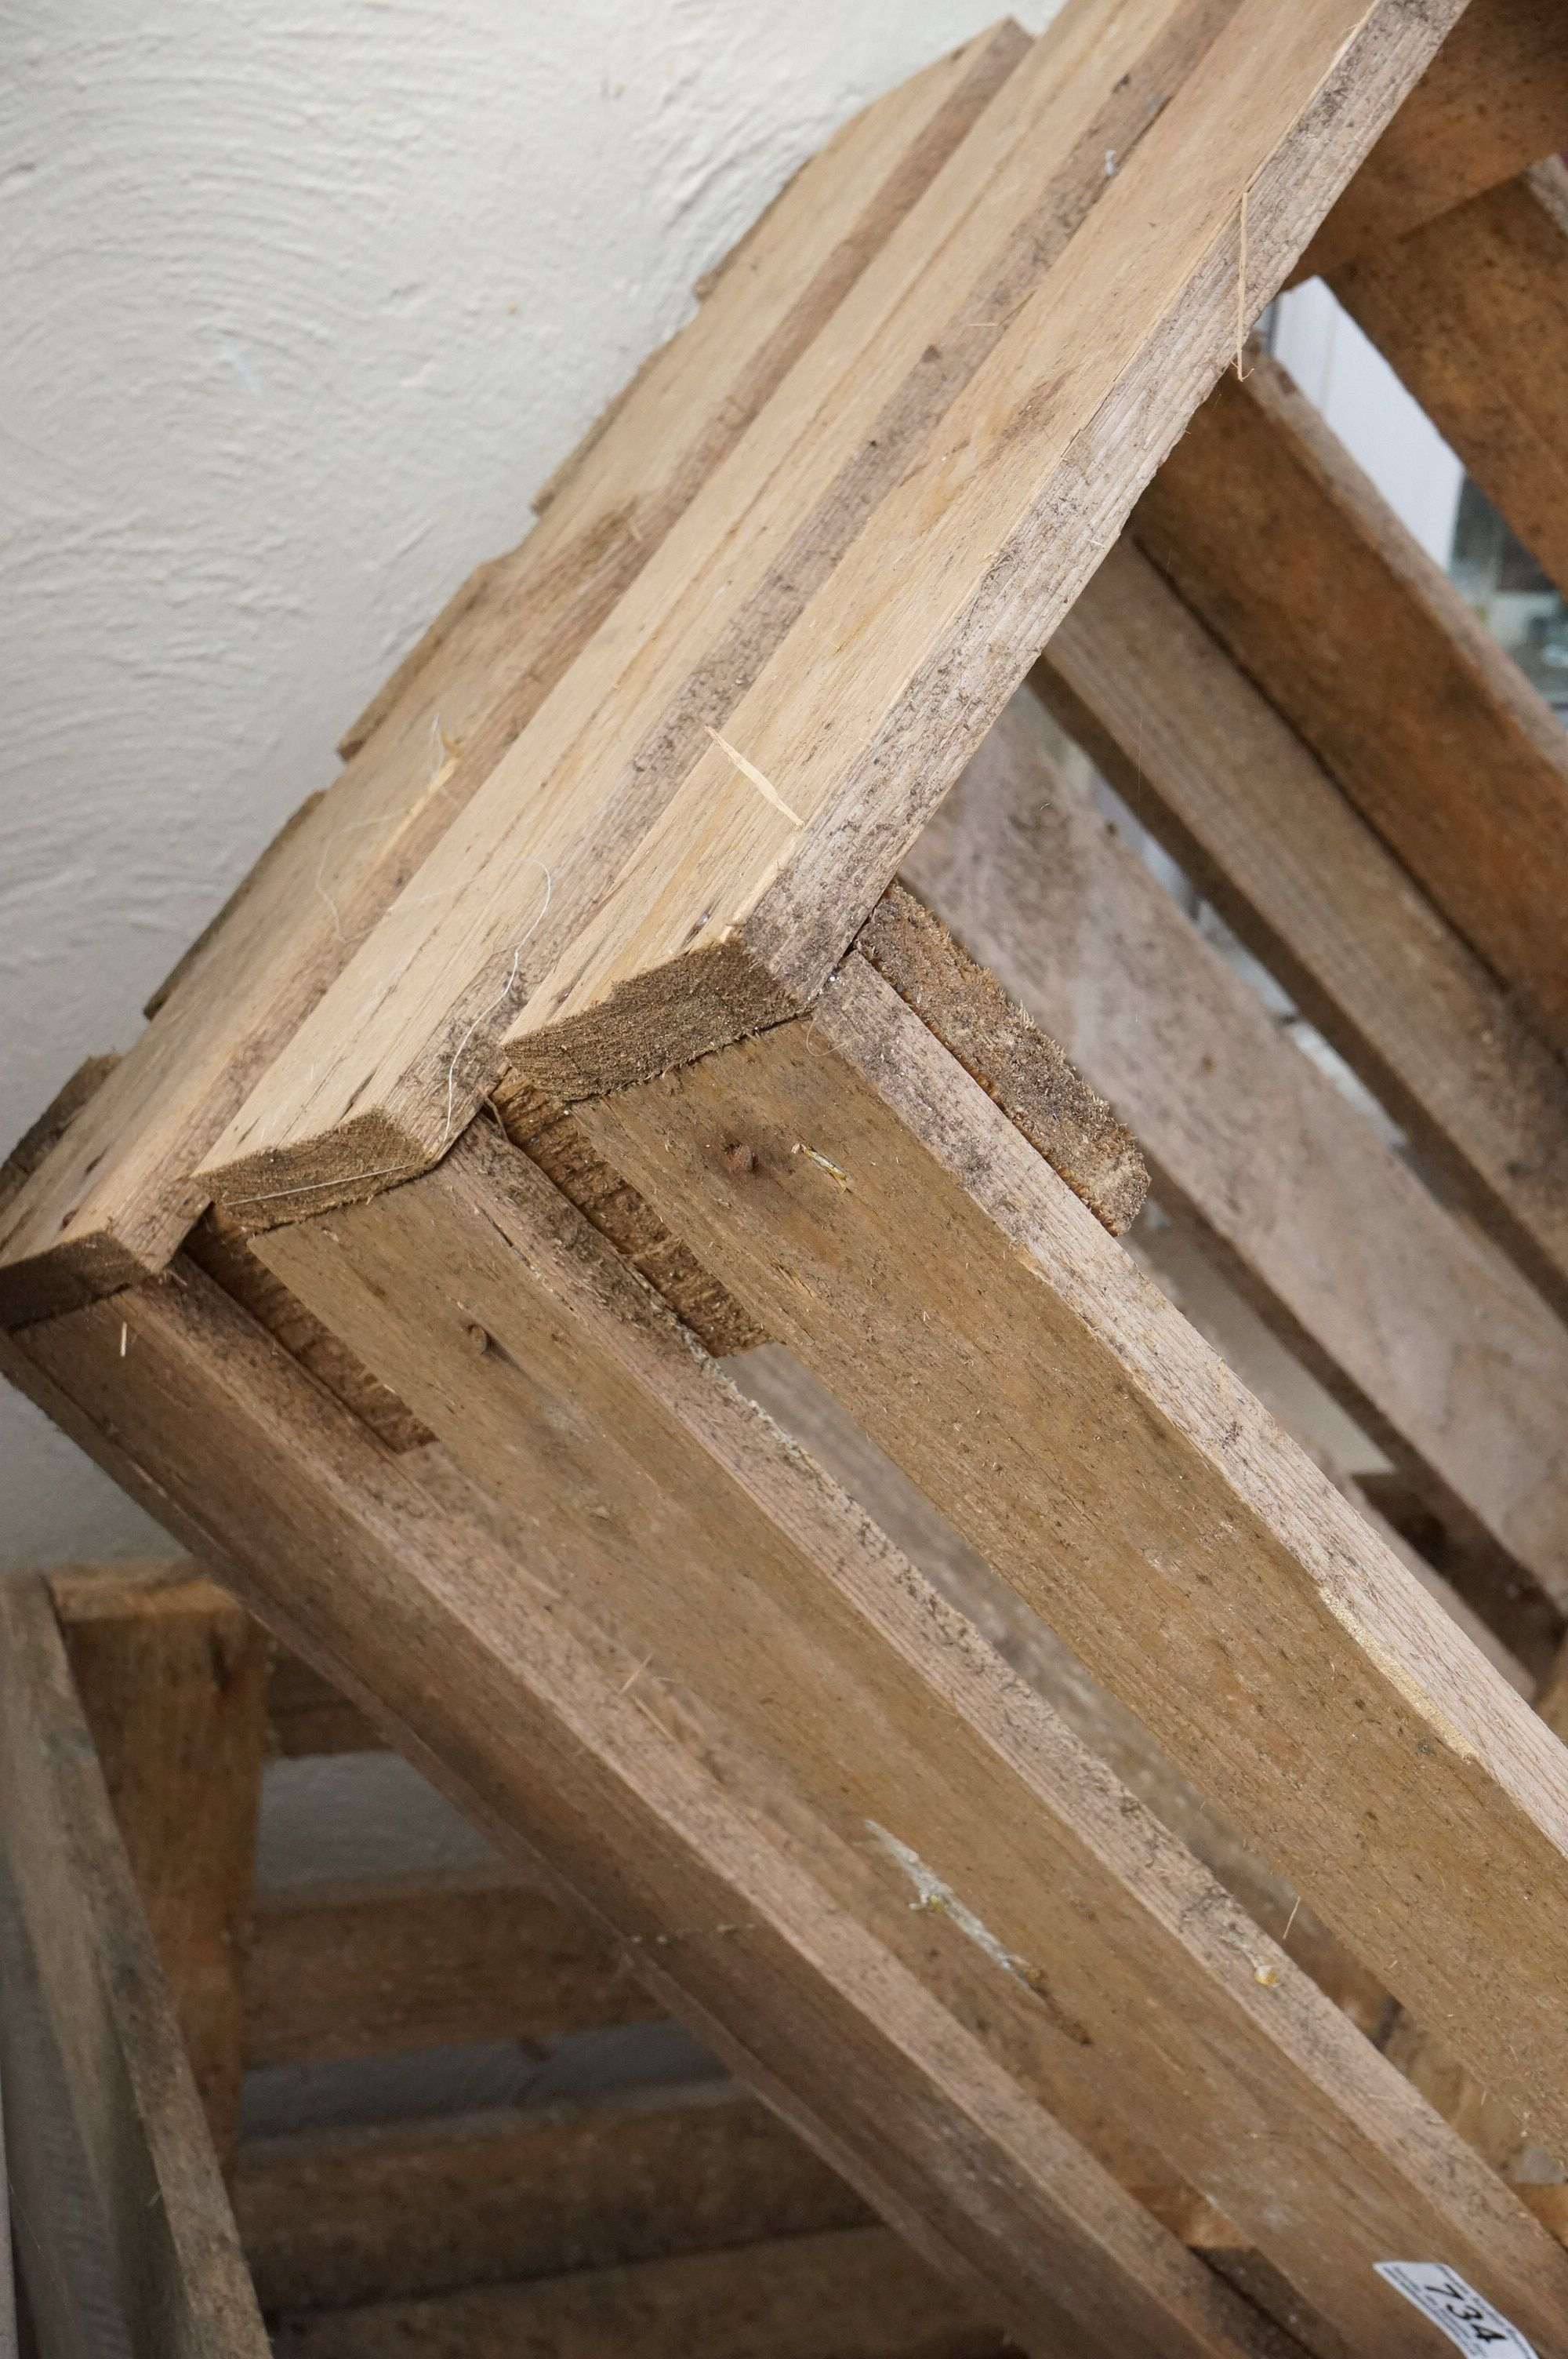 Four stacking pine crates for apples / vegetables - Image 4 of 4